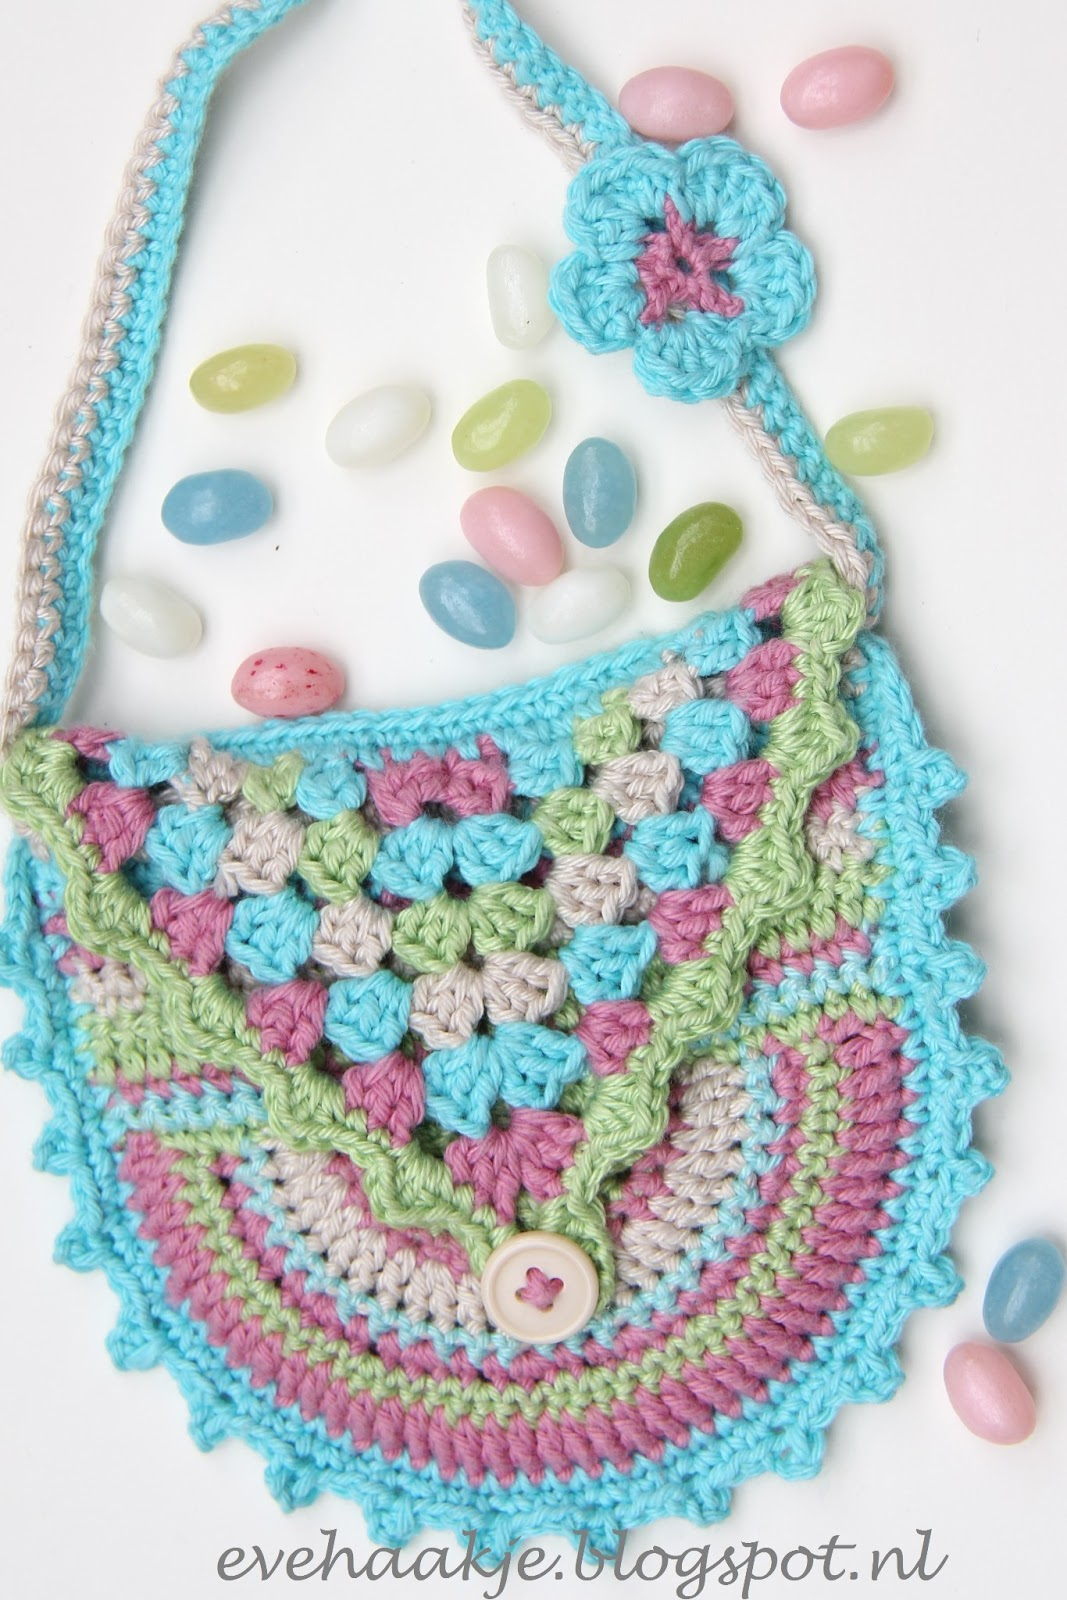 Crochet Patterns English : Haken en Kralen: Crochet patterns English